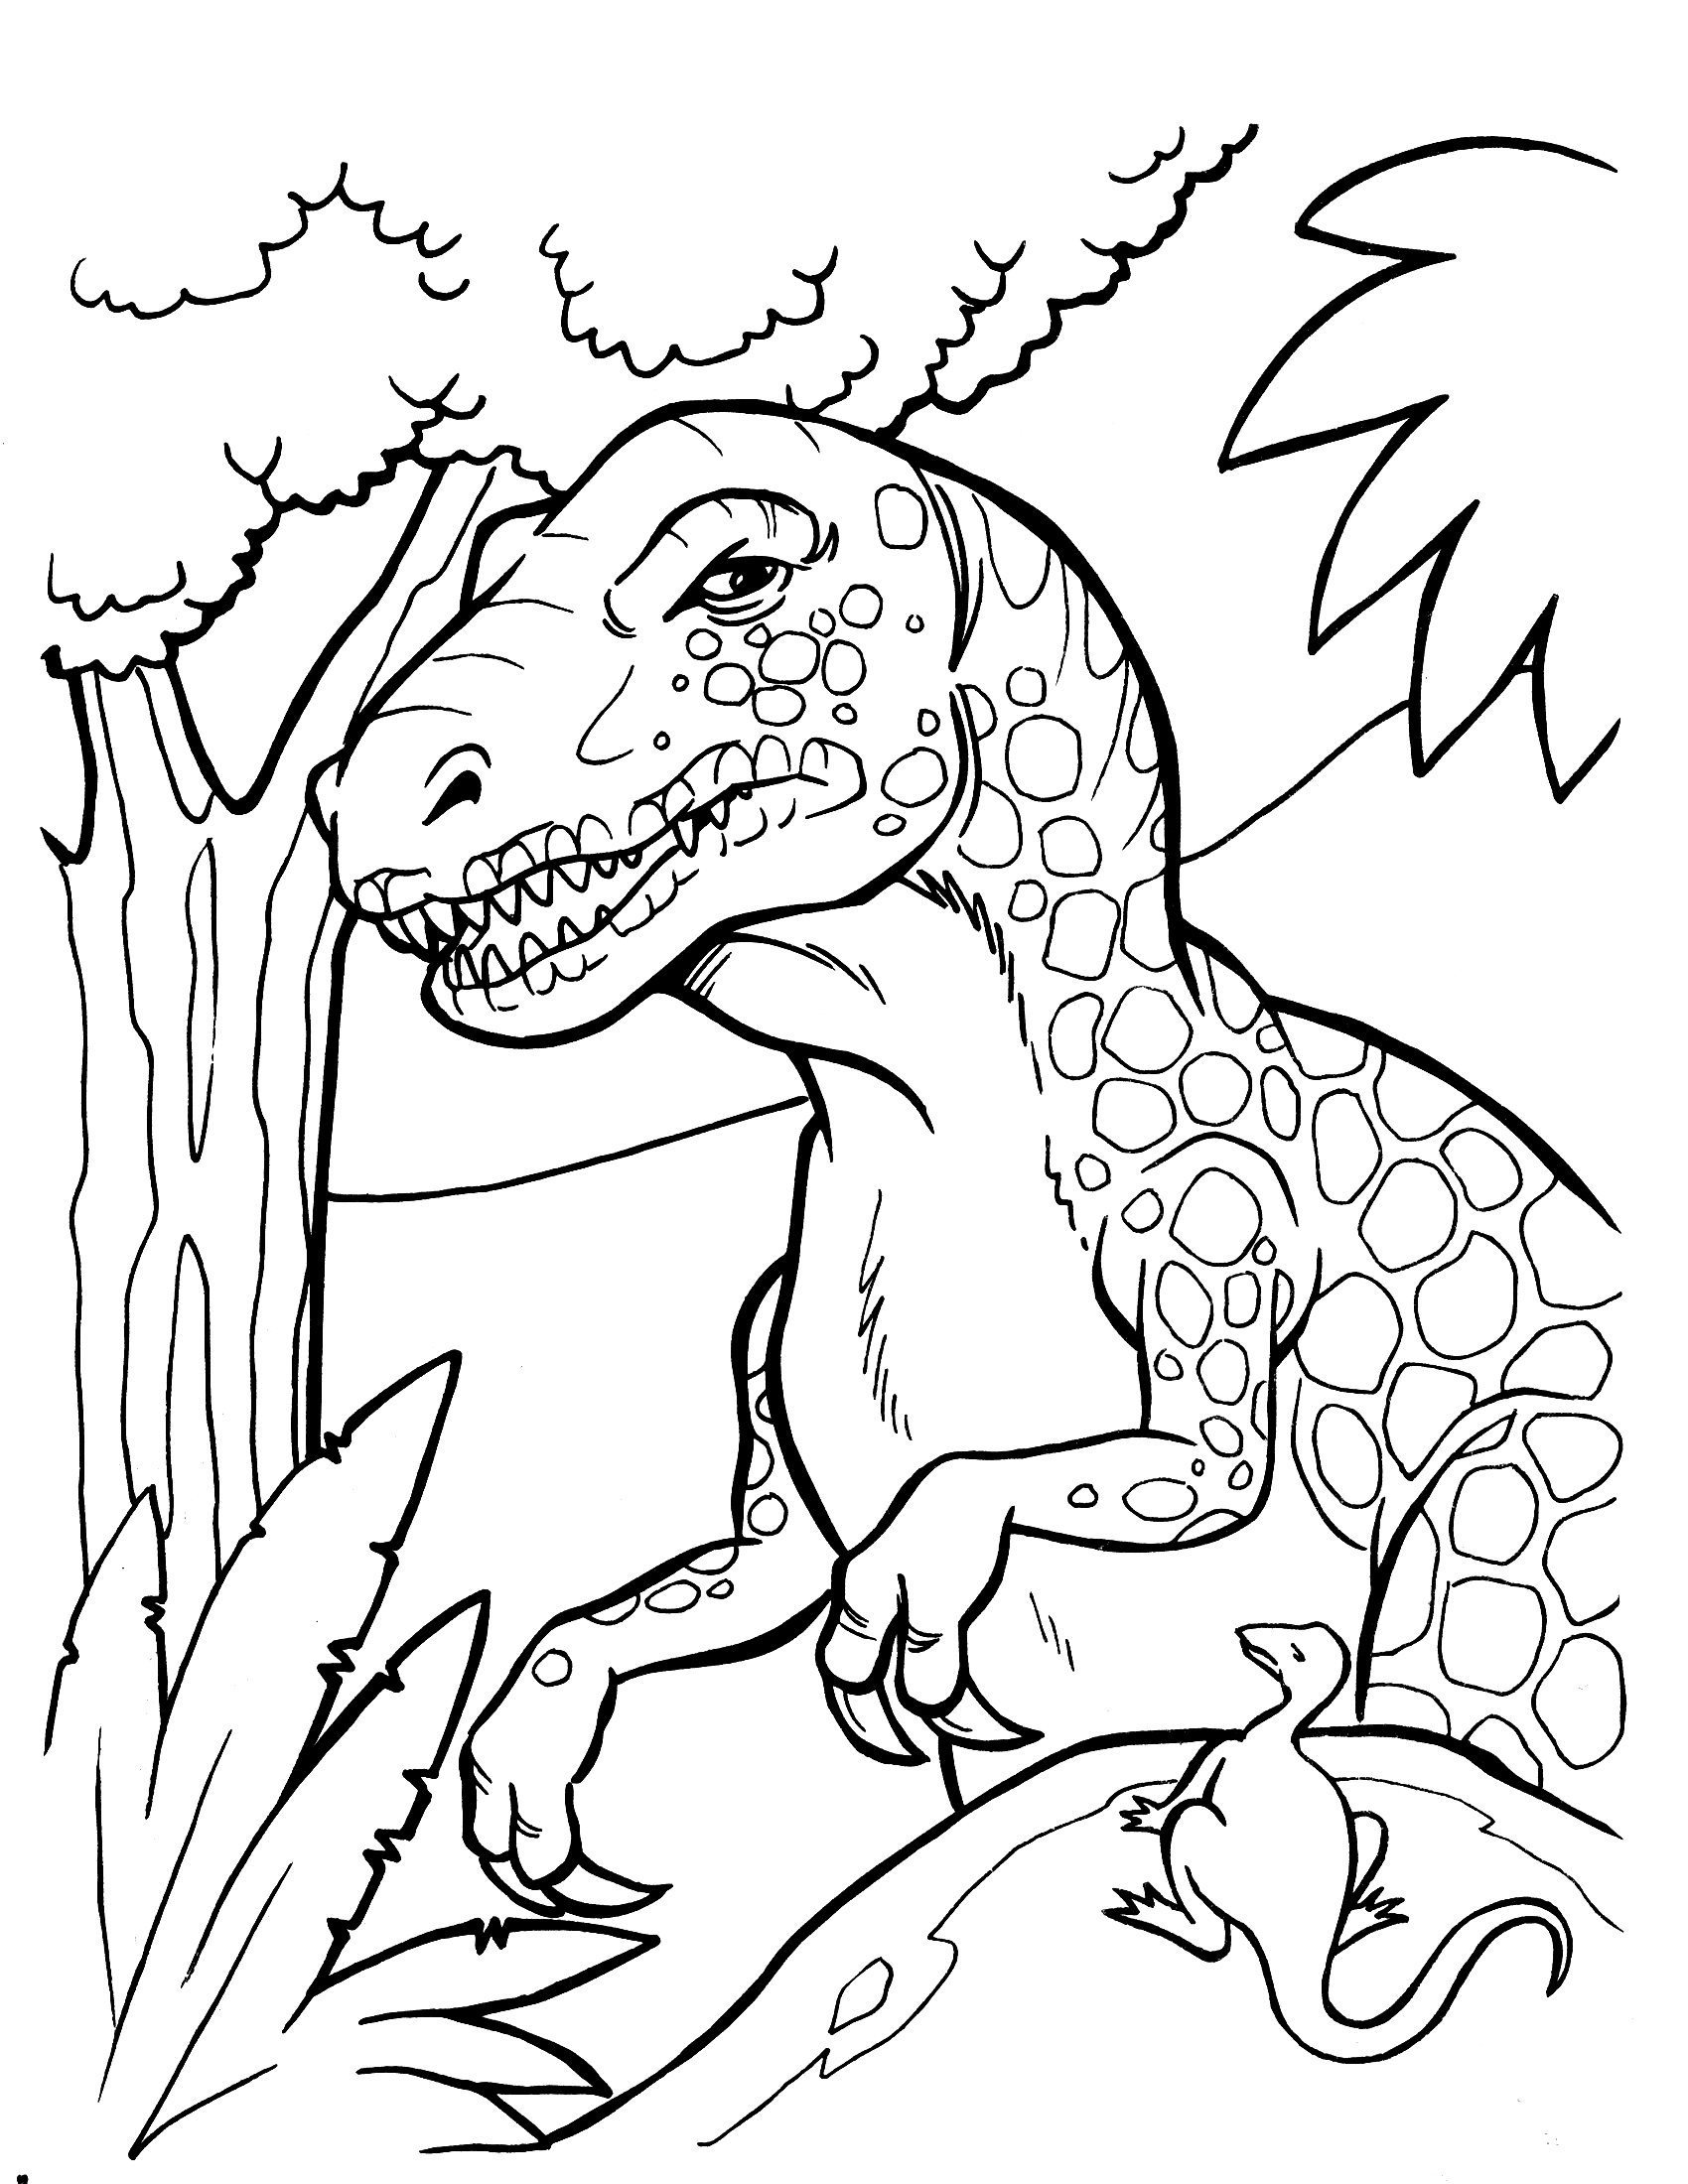 dinosaur color dinosaur coloring pages for kids color dinosaur